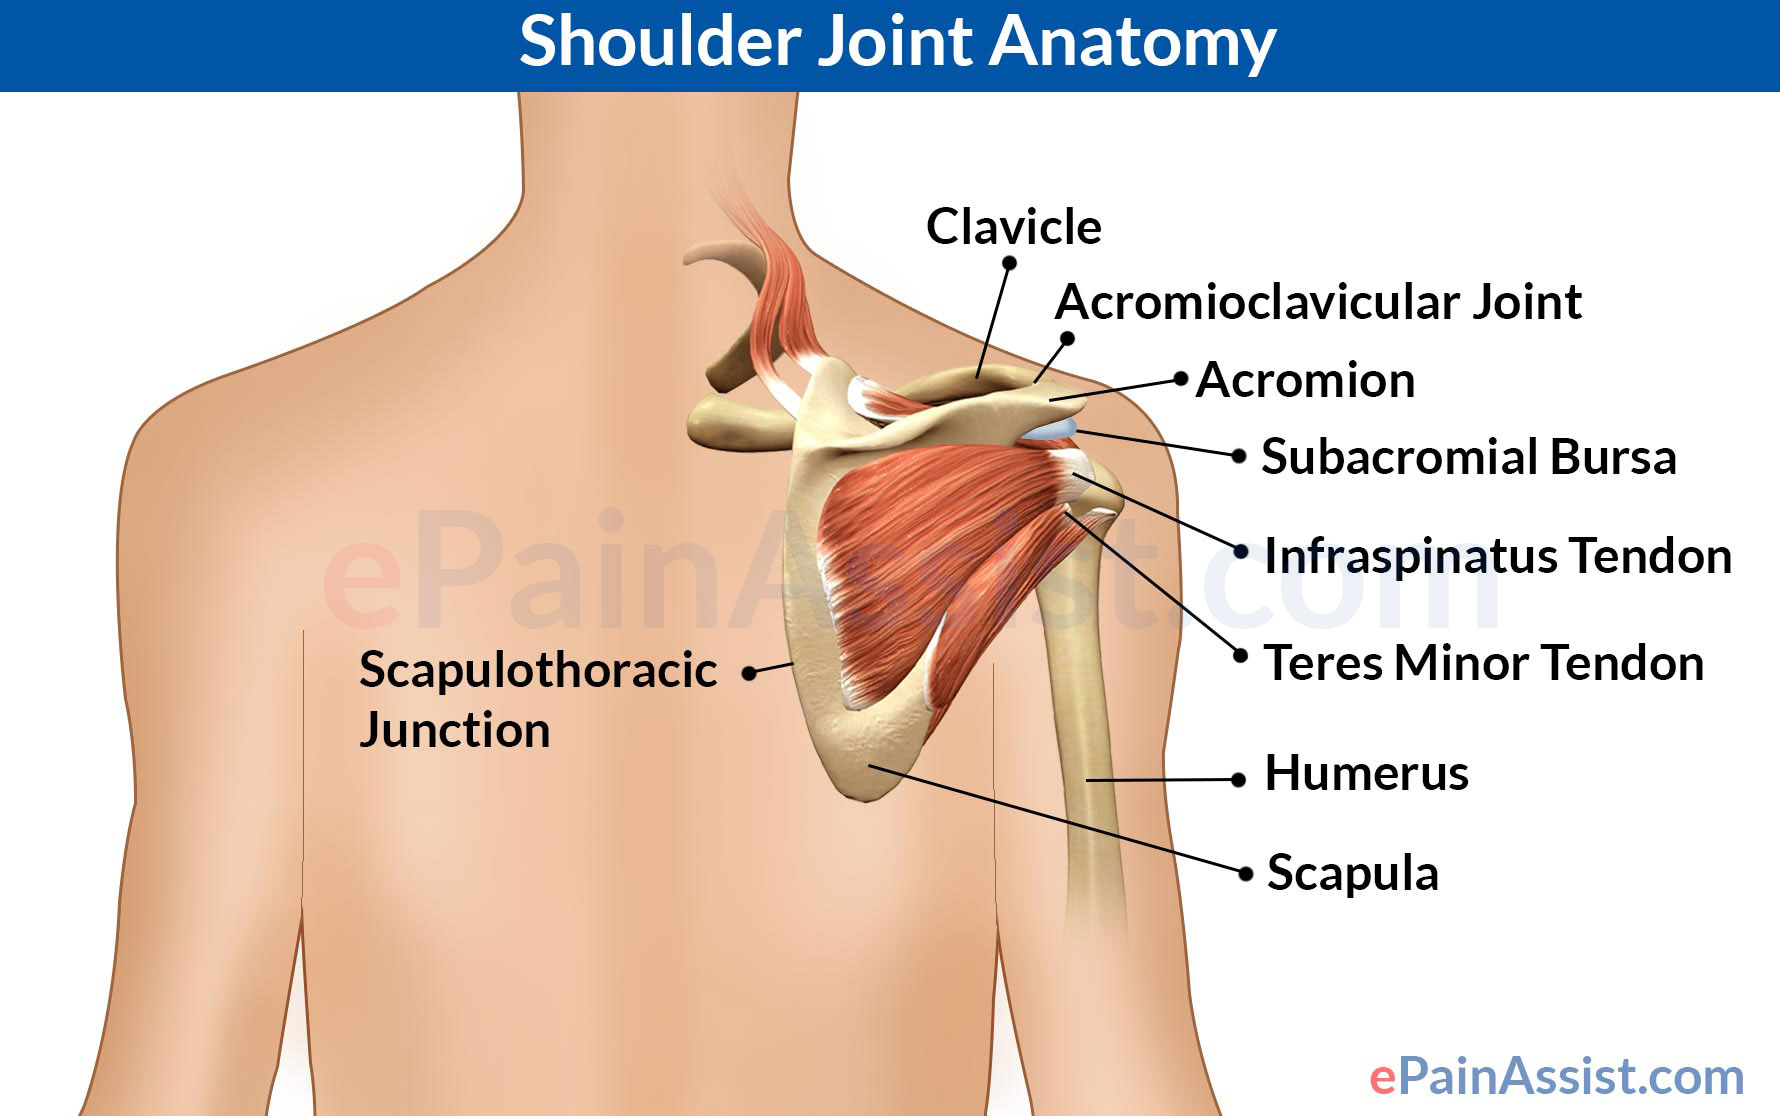 Shoulder Joint Anatomy|Skeletal System|Cartilages|Ligaments|Muscles ...